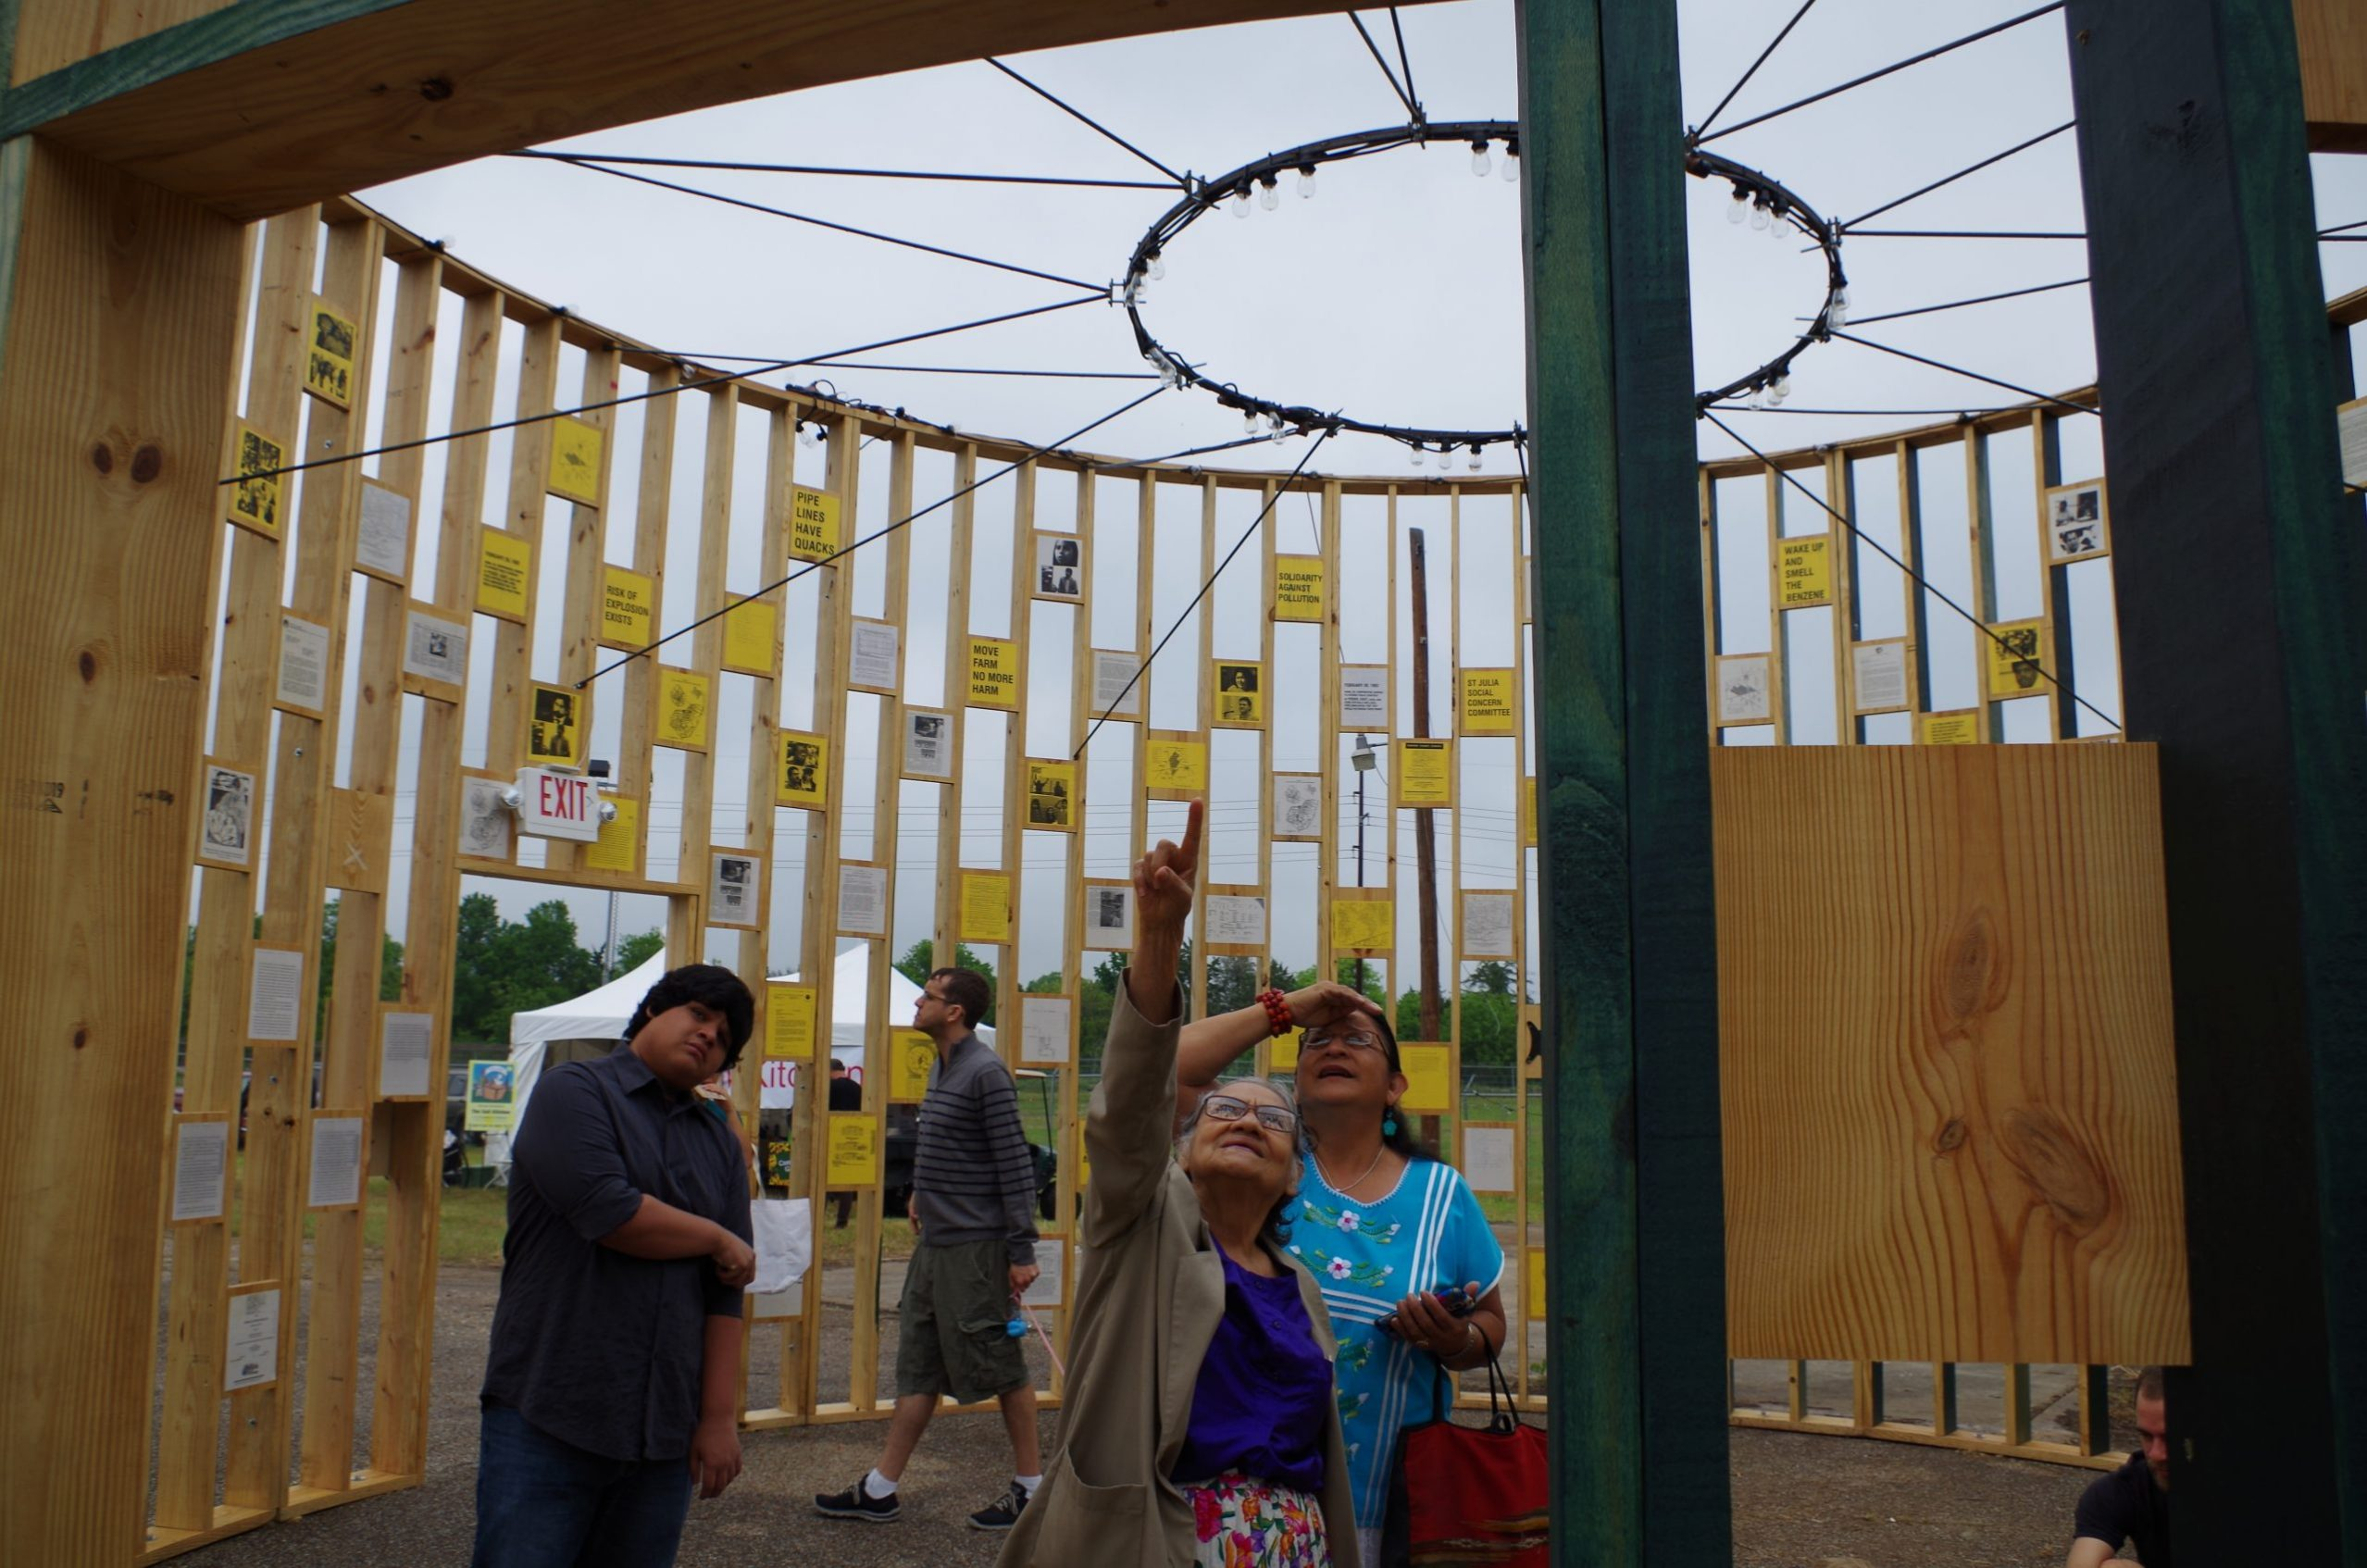 Locals view an art installation in Austin.